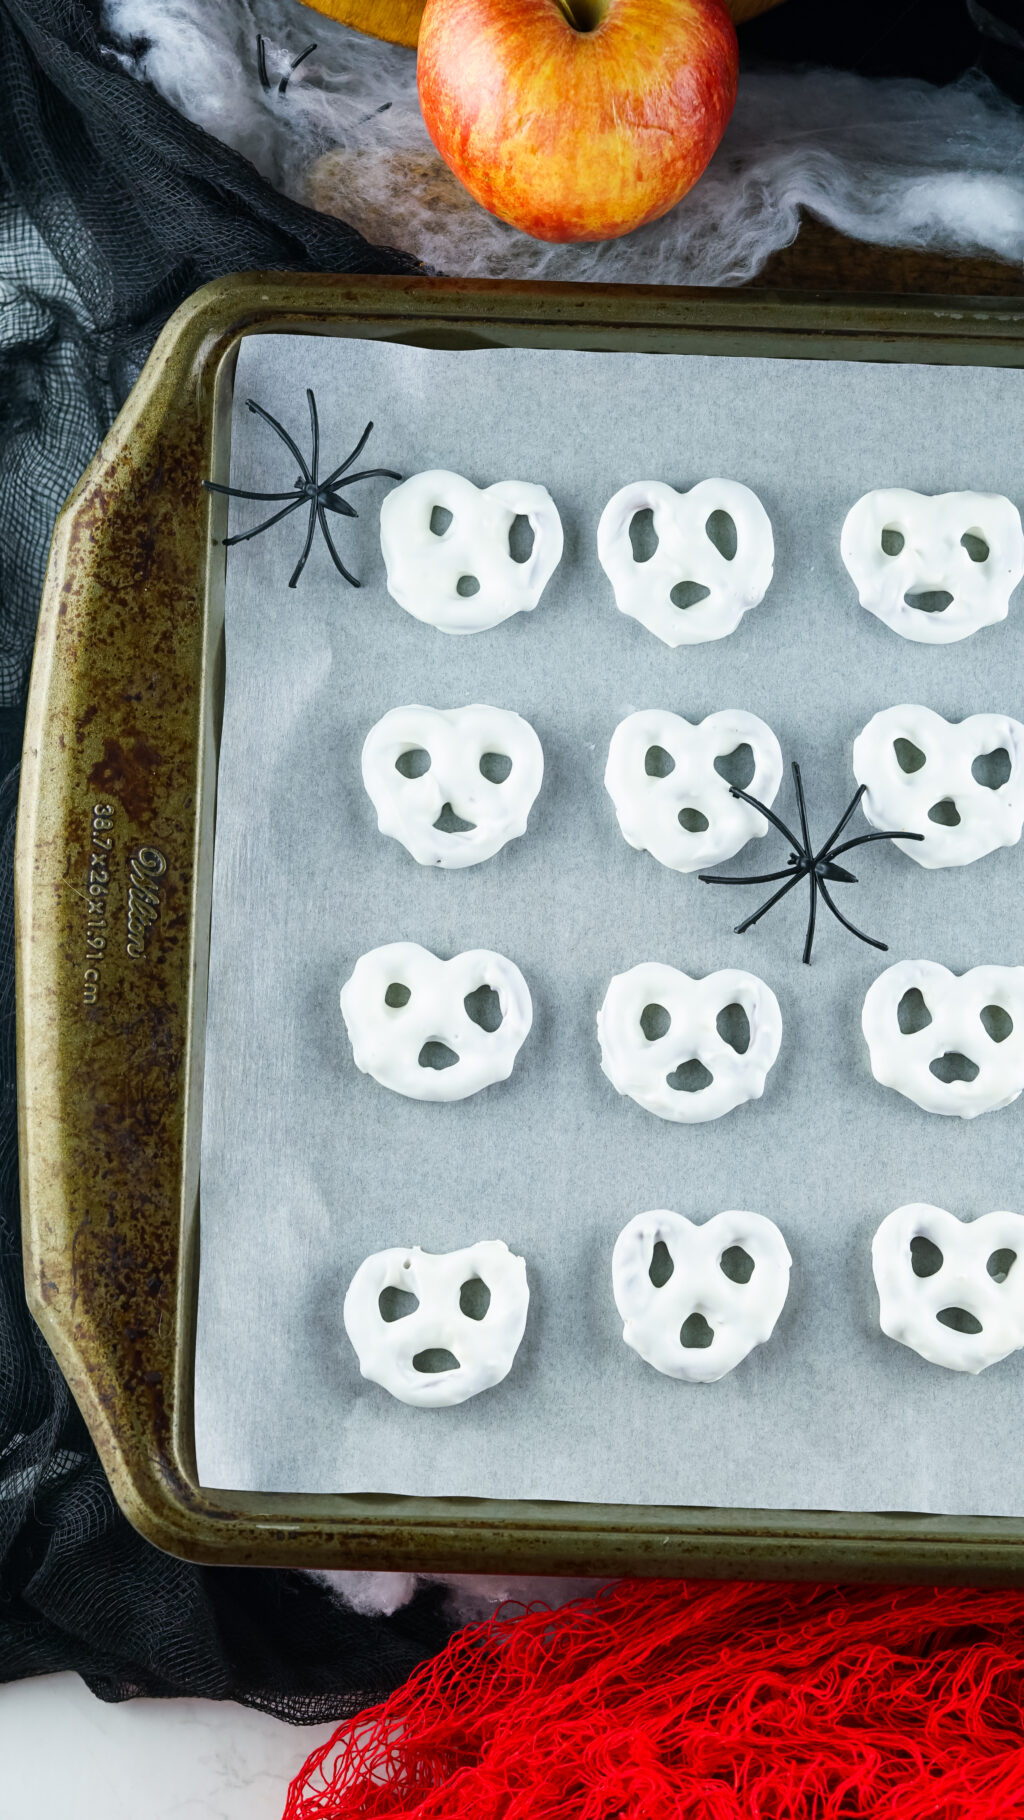 white chocolate pretzels on a baking sheet drying